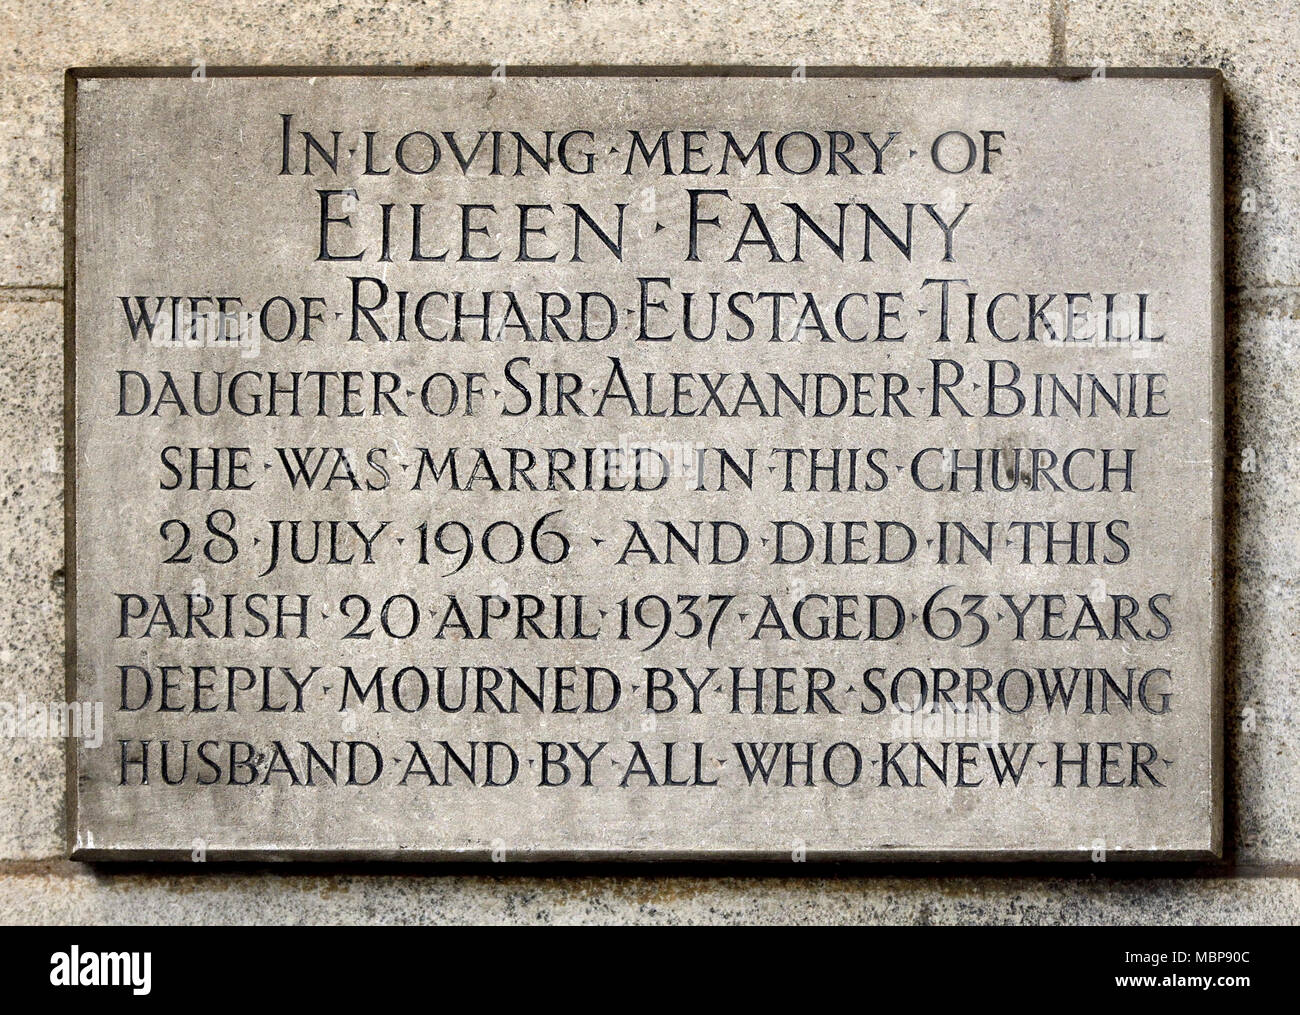 London, England, UK. St Mary Abbot's Church, Kensington. Commemorative plaque to Eileen Fanny Tickell, wife of Richard Eustace Tickell, daughter of Si - Stock Image